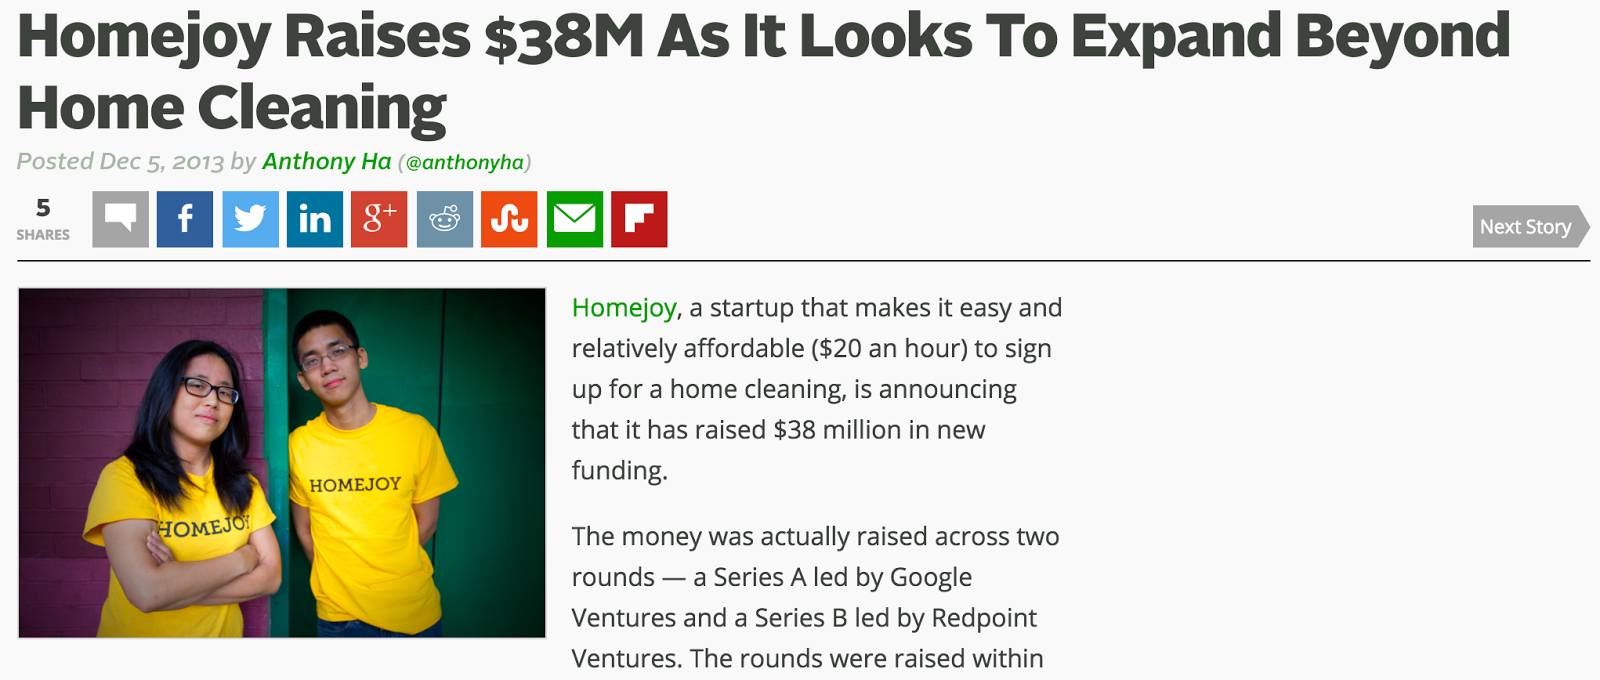 New Story - Homejoy raises $38 million